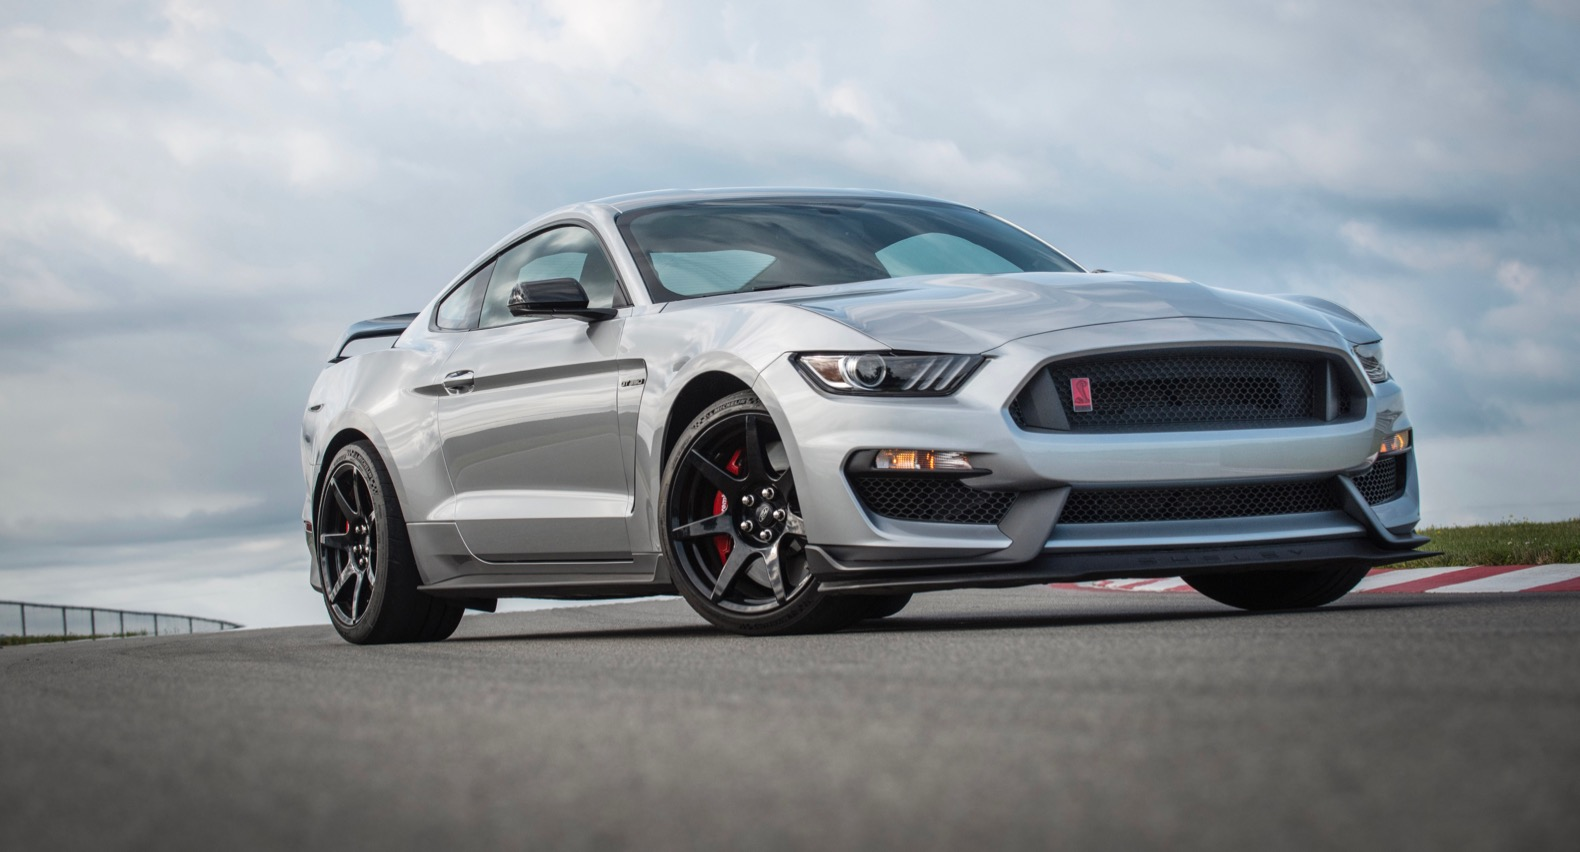 2020 Ford Mustang Shelby GT350R gets some performance upgrades   The Torque Report